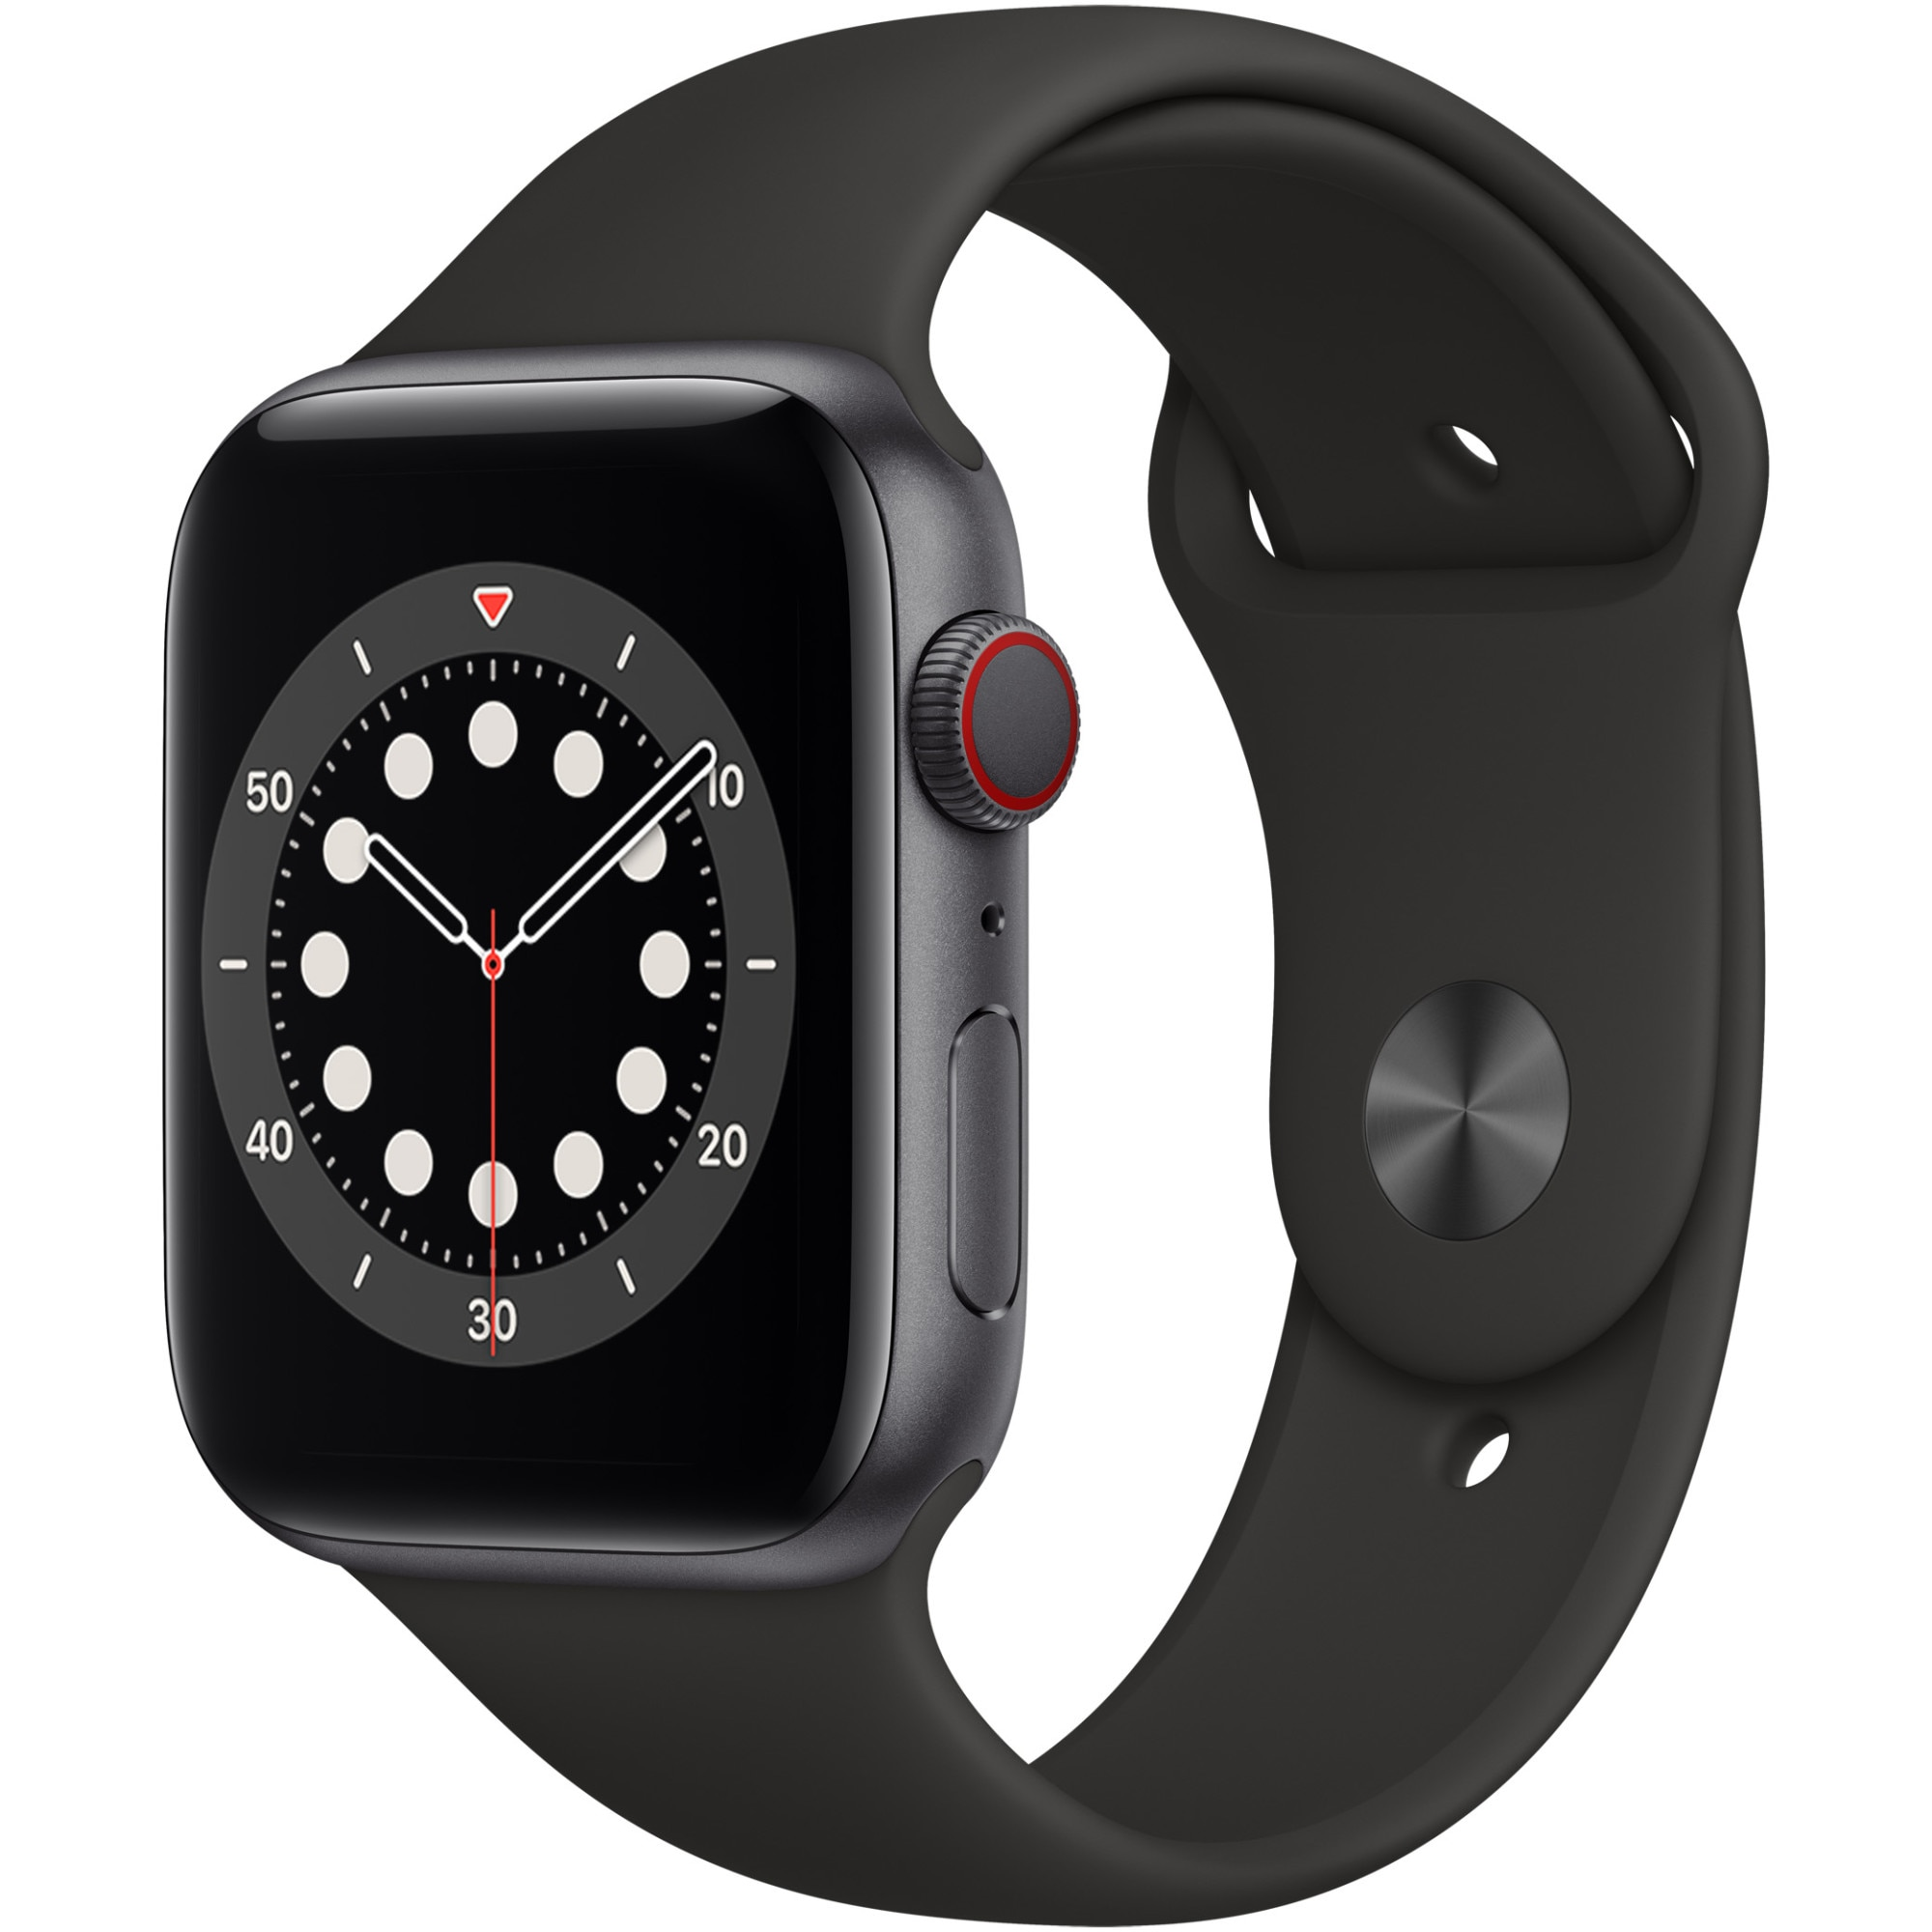 Fotografie Apple Watch 6, GPS, Cellular, Carcasa Space Gray Aluminium 44mm, Black Sport Band